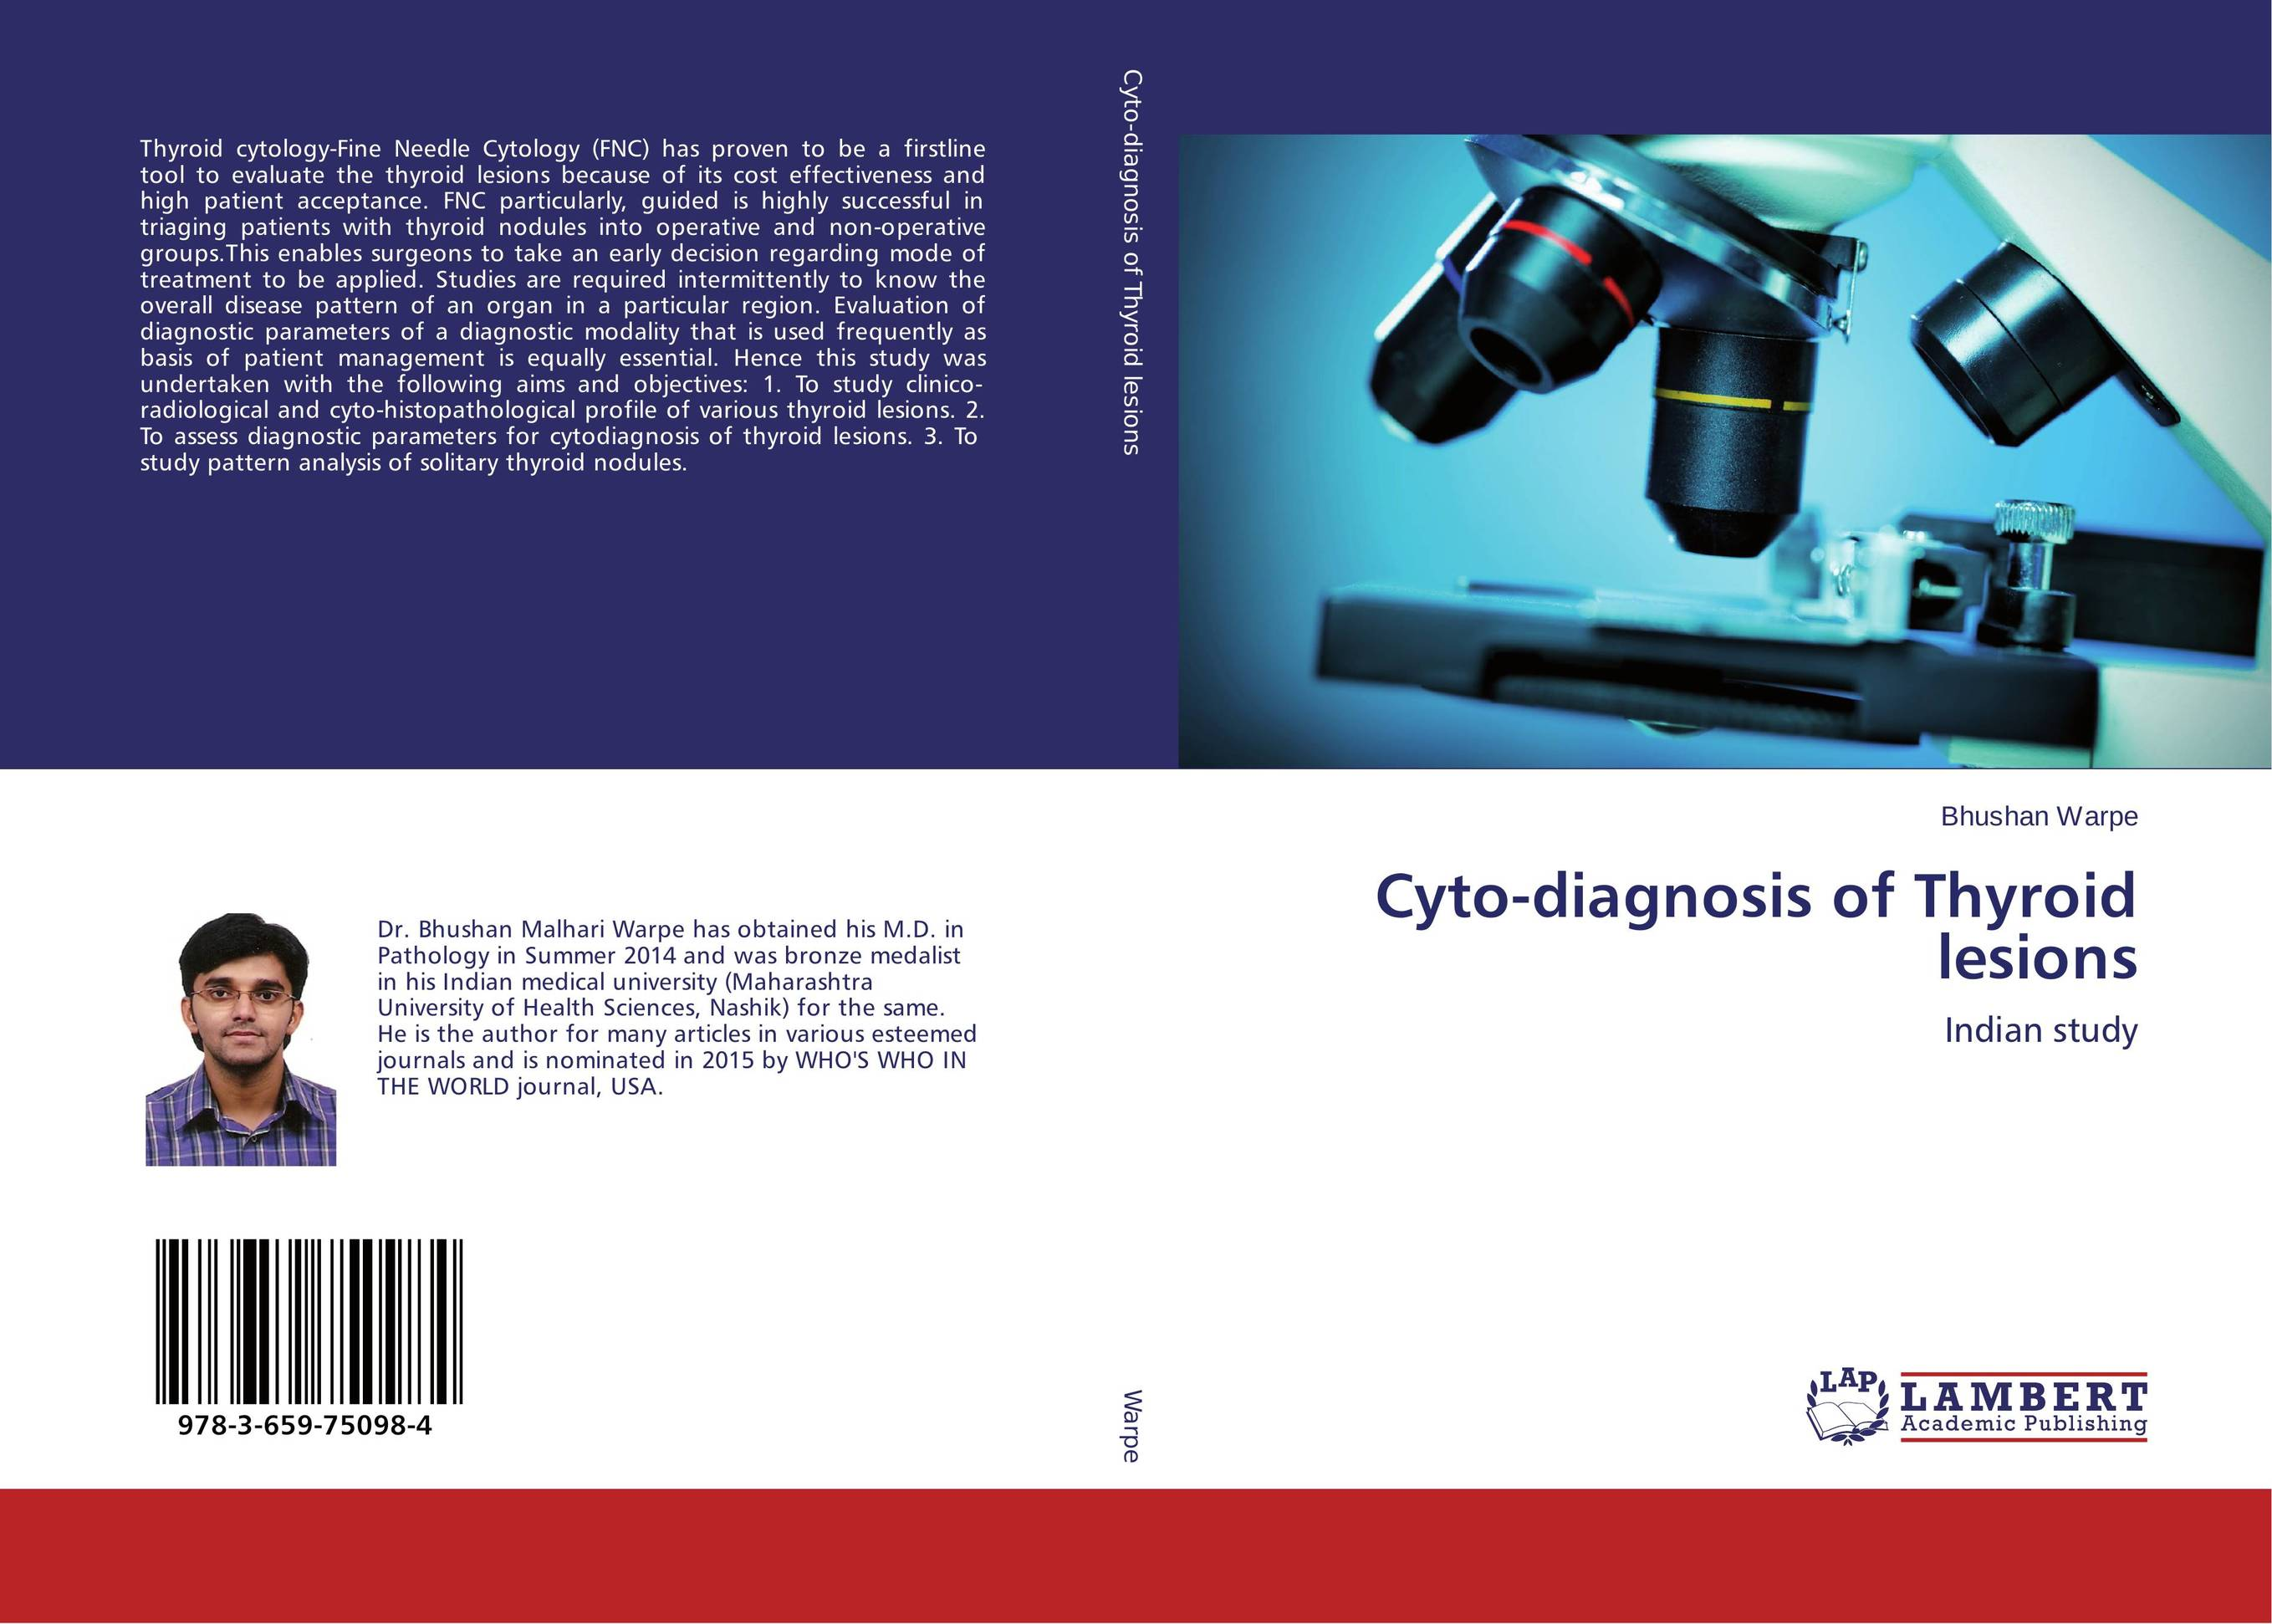 Cyto-diagnosis of Thyroid lesions the operative